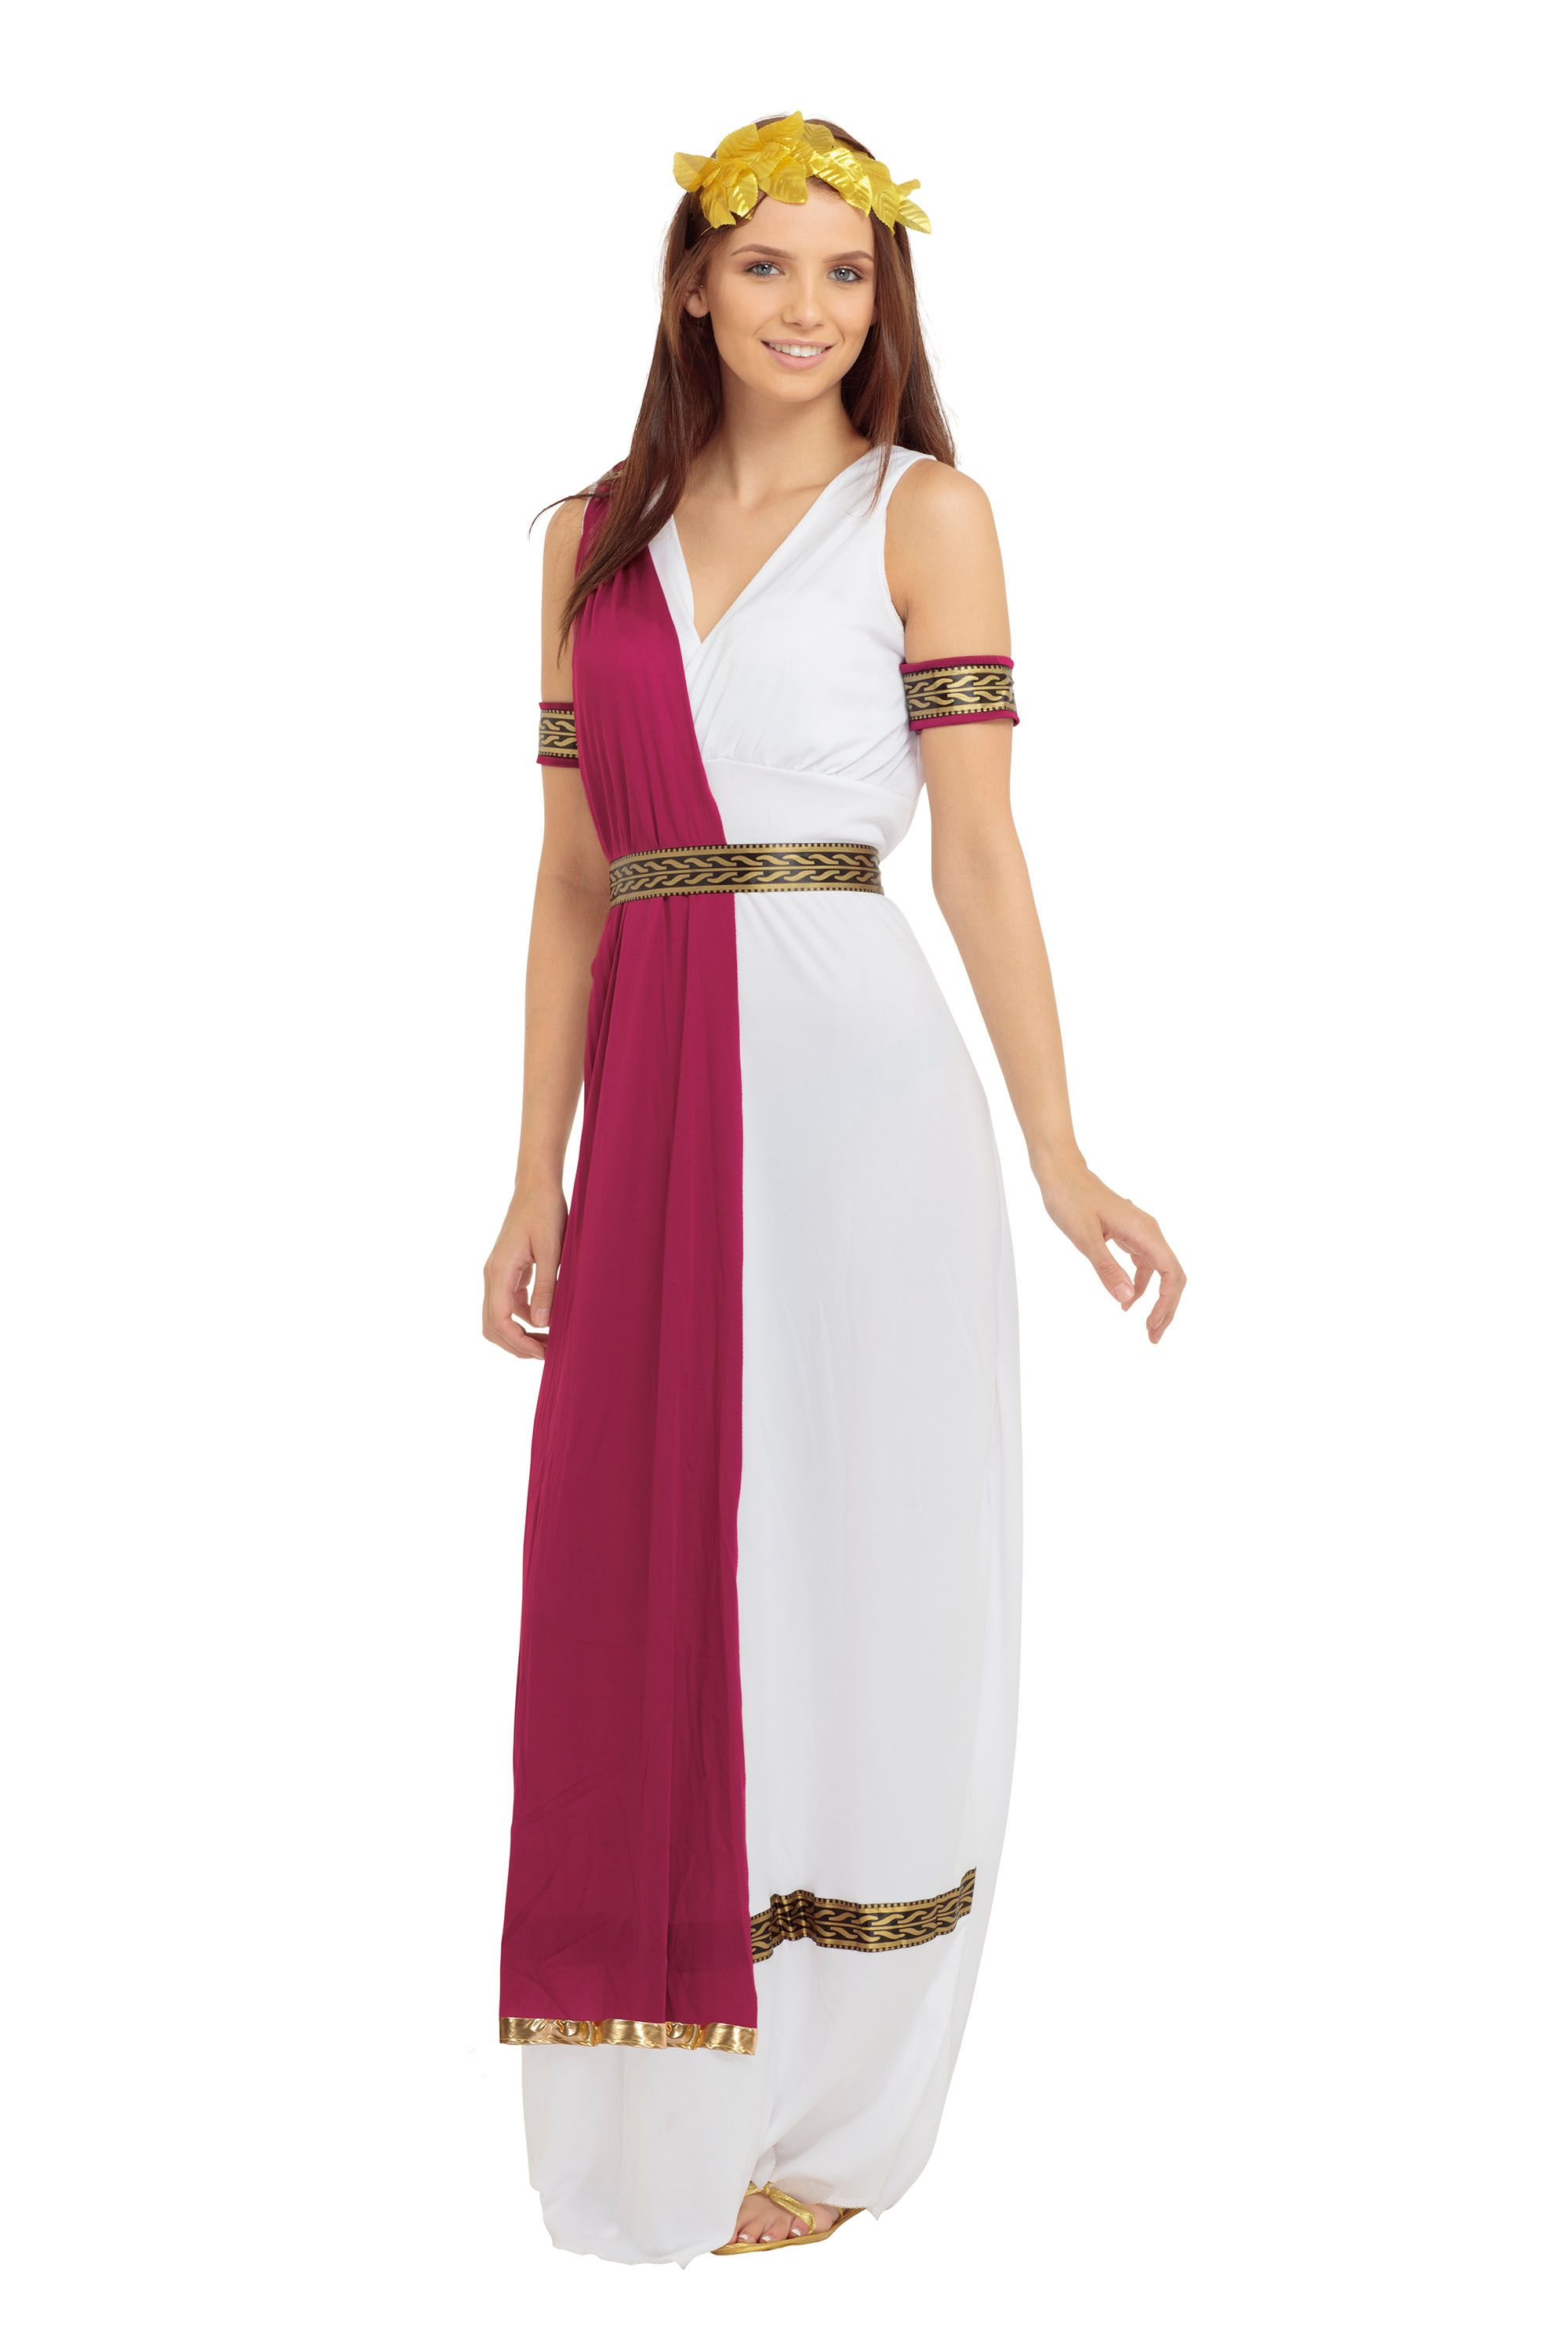 317380a4fec Greek Roman Goddess Toga Womens Fancy Dress Costume Outfit Ladies ...